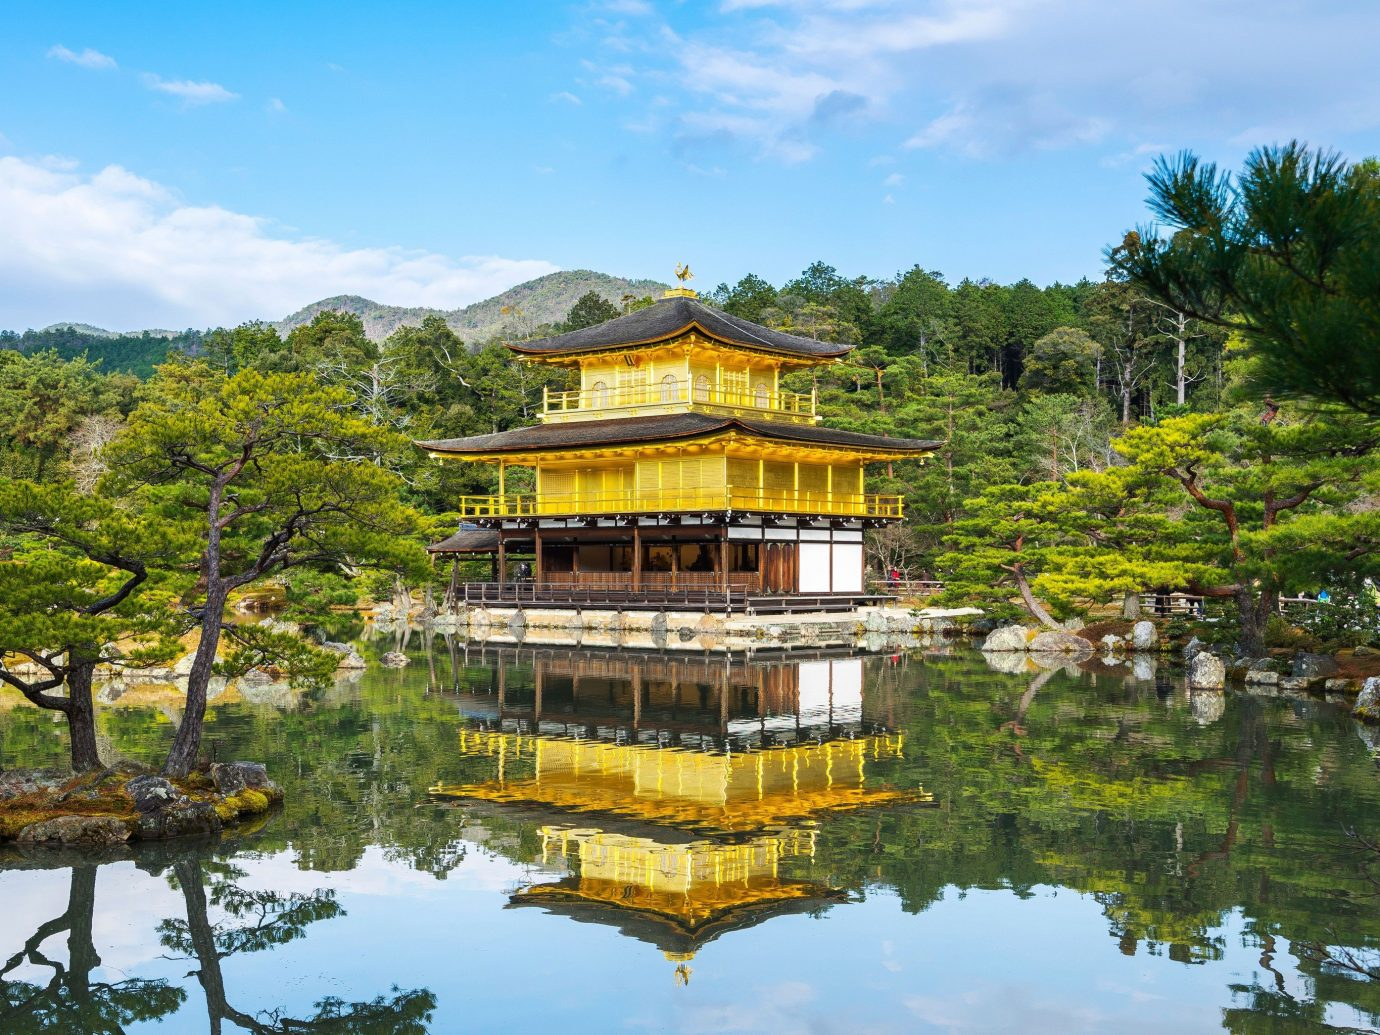 Trip Ideas tree outdoor sky water Nature pond reflection pagoda temple tourism estate Garden palace Lake surrounded